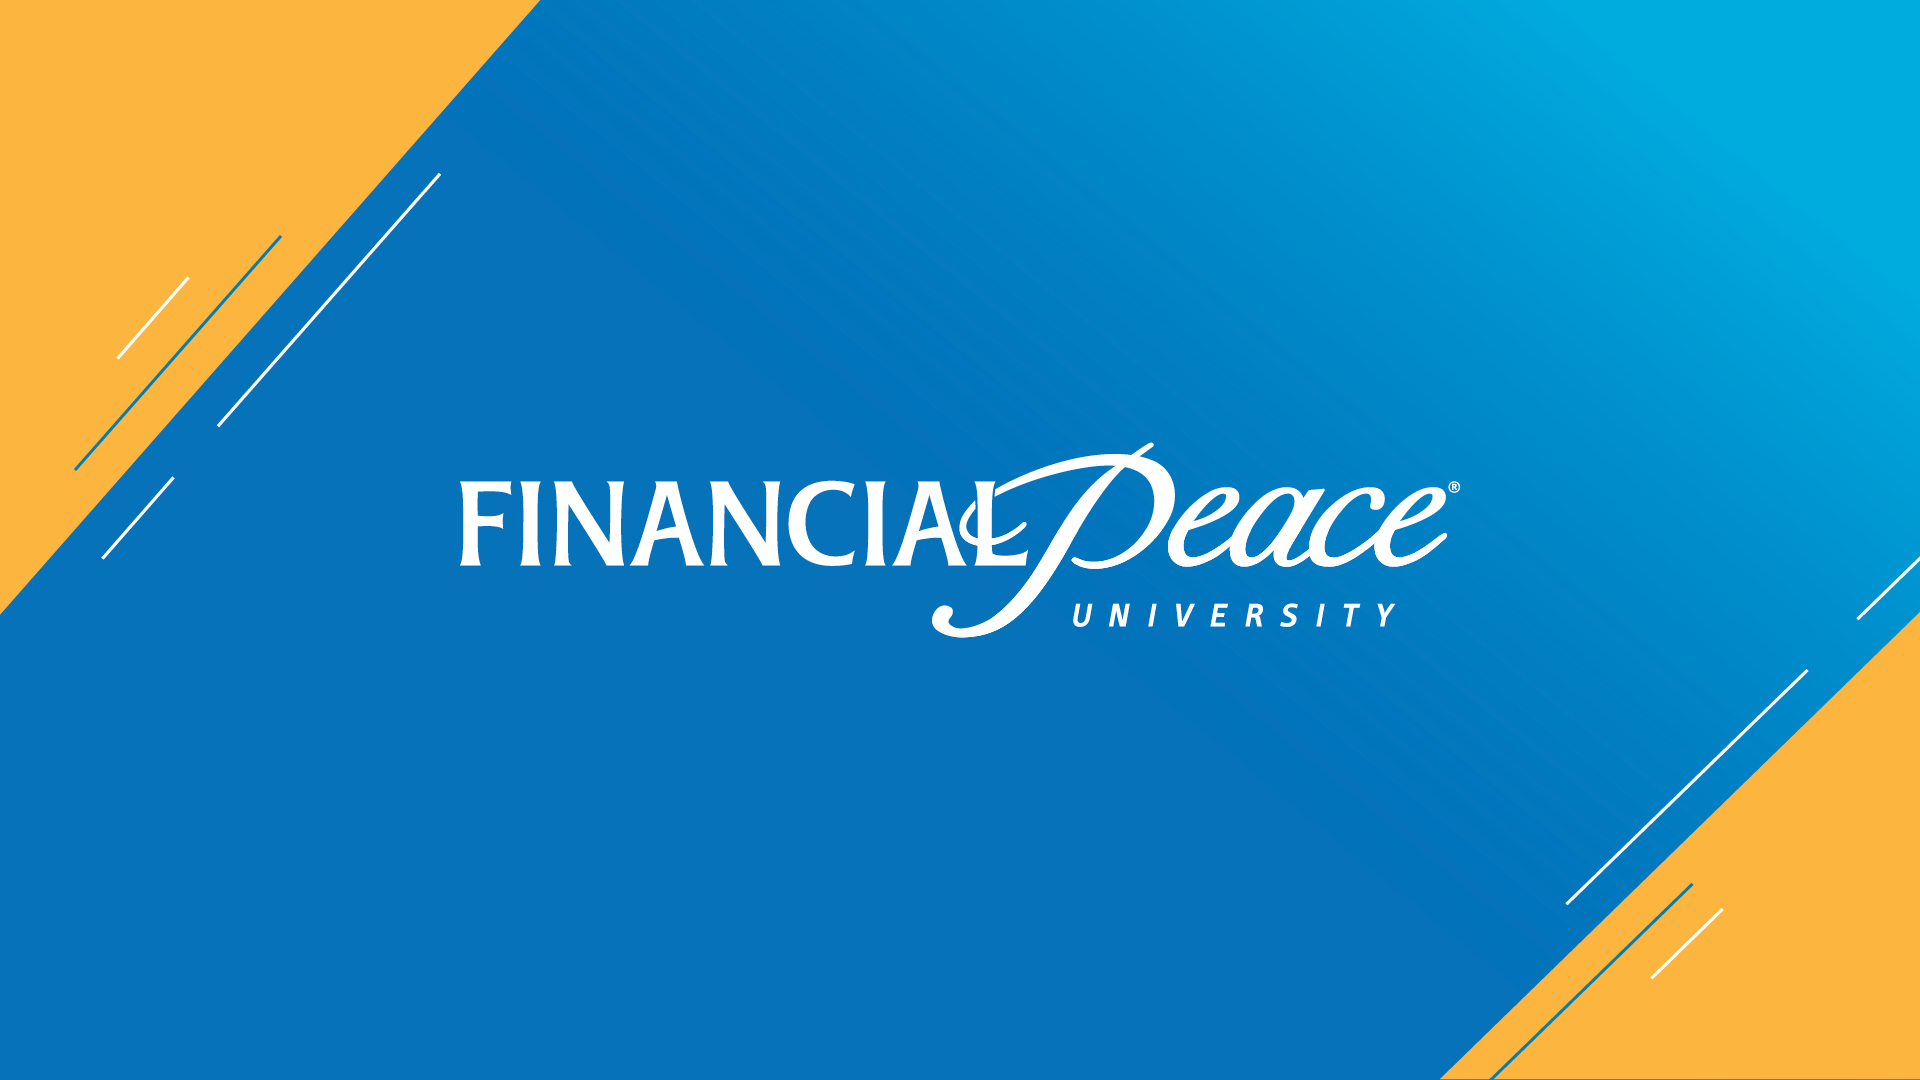 financial-peace-slide-logo image